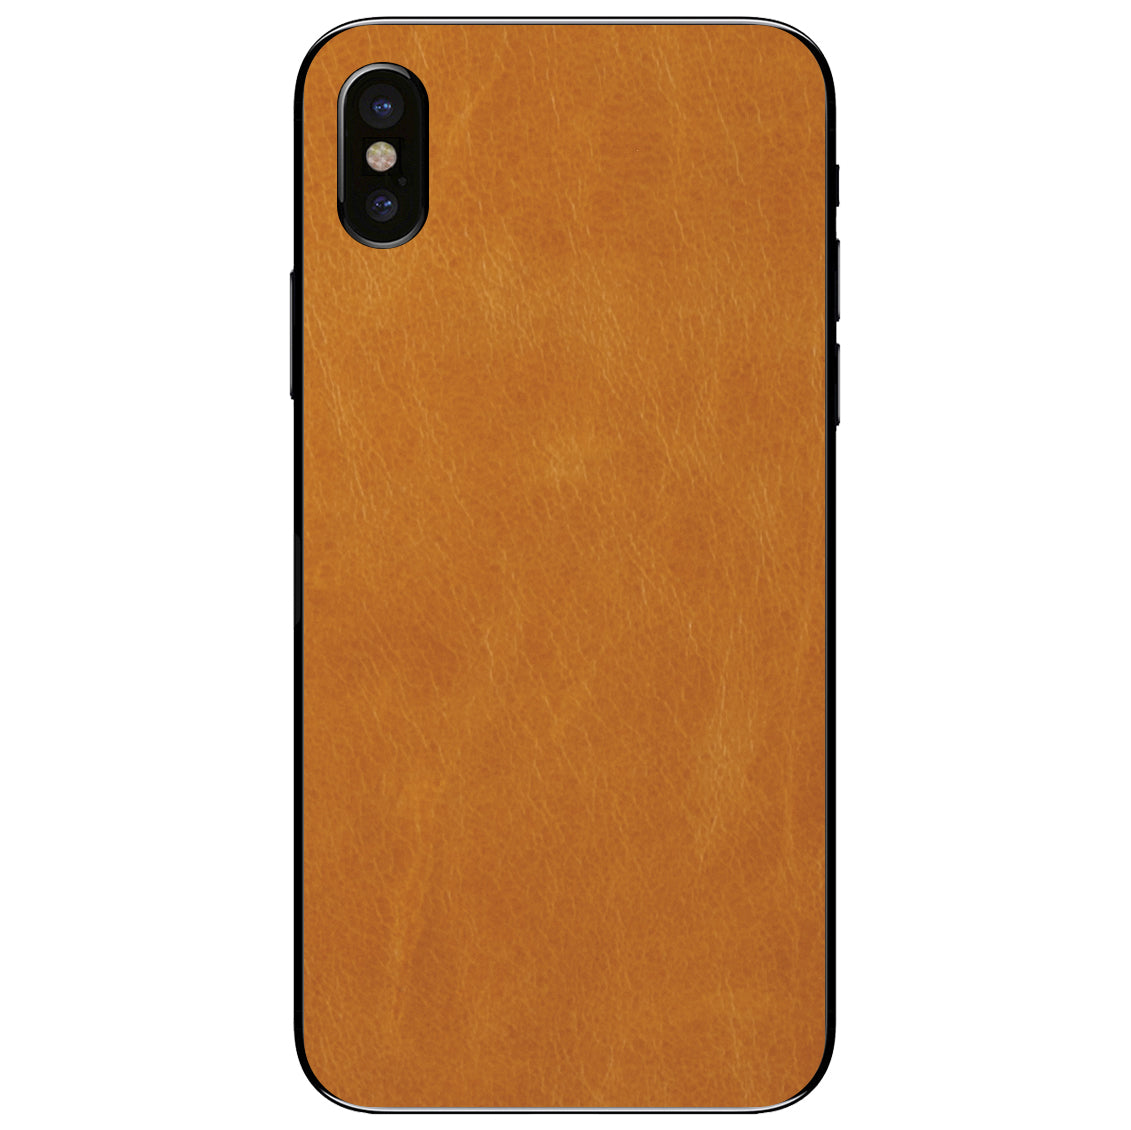 Tan iPhone X Leather Skin